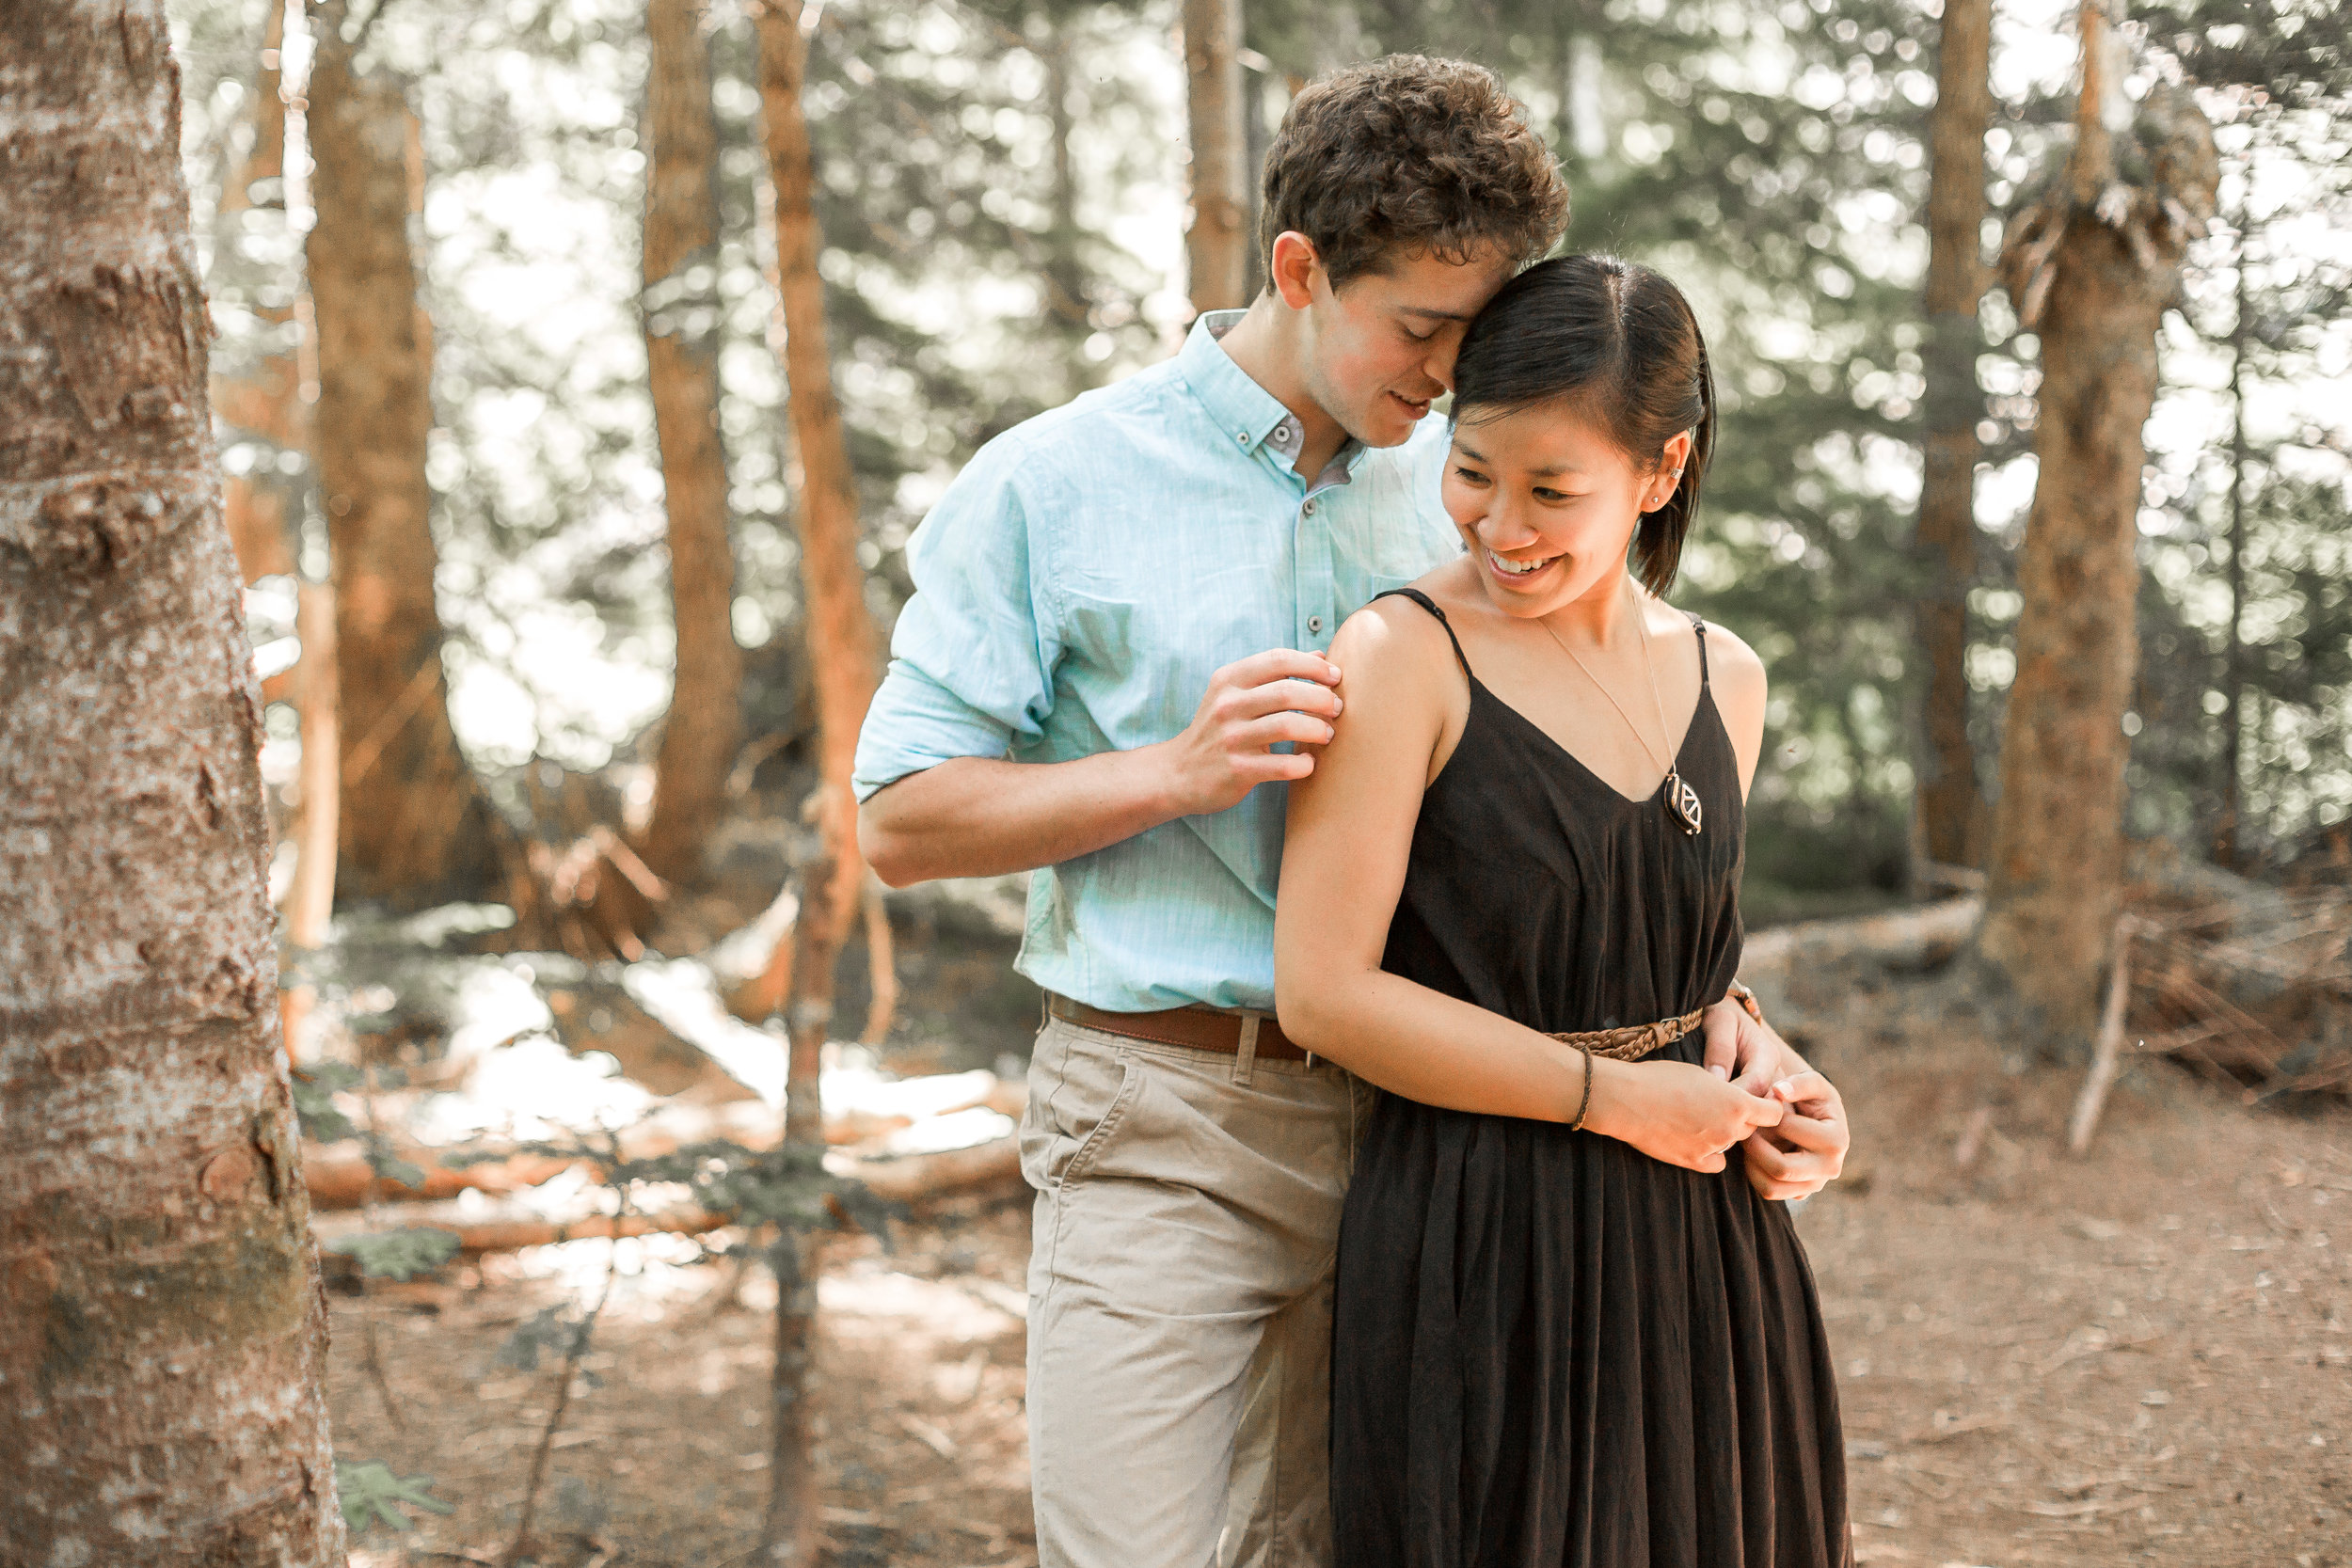 nicole-daacke-photography-hiking-engagement-session-in-snoqualmie-pass-washington-wedding-photographer-seattle-elopement-photography-adventurous-hiking-photos-heather-lake-washington-trails-10.jpg